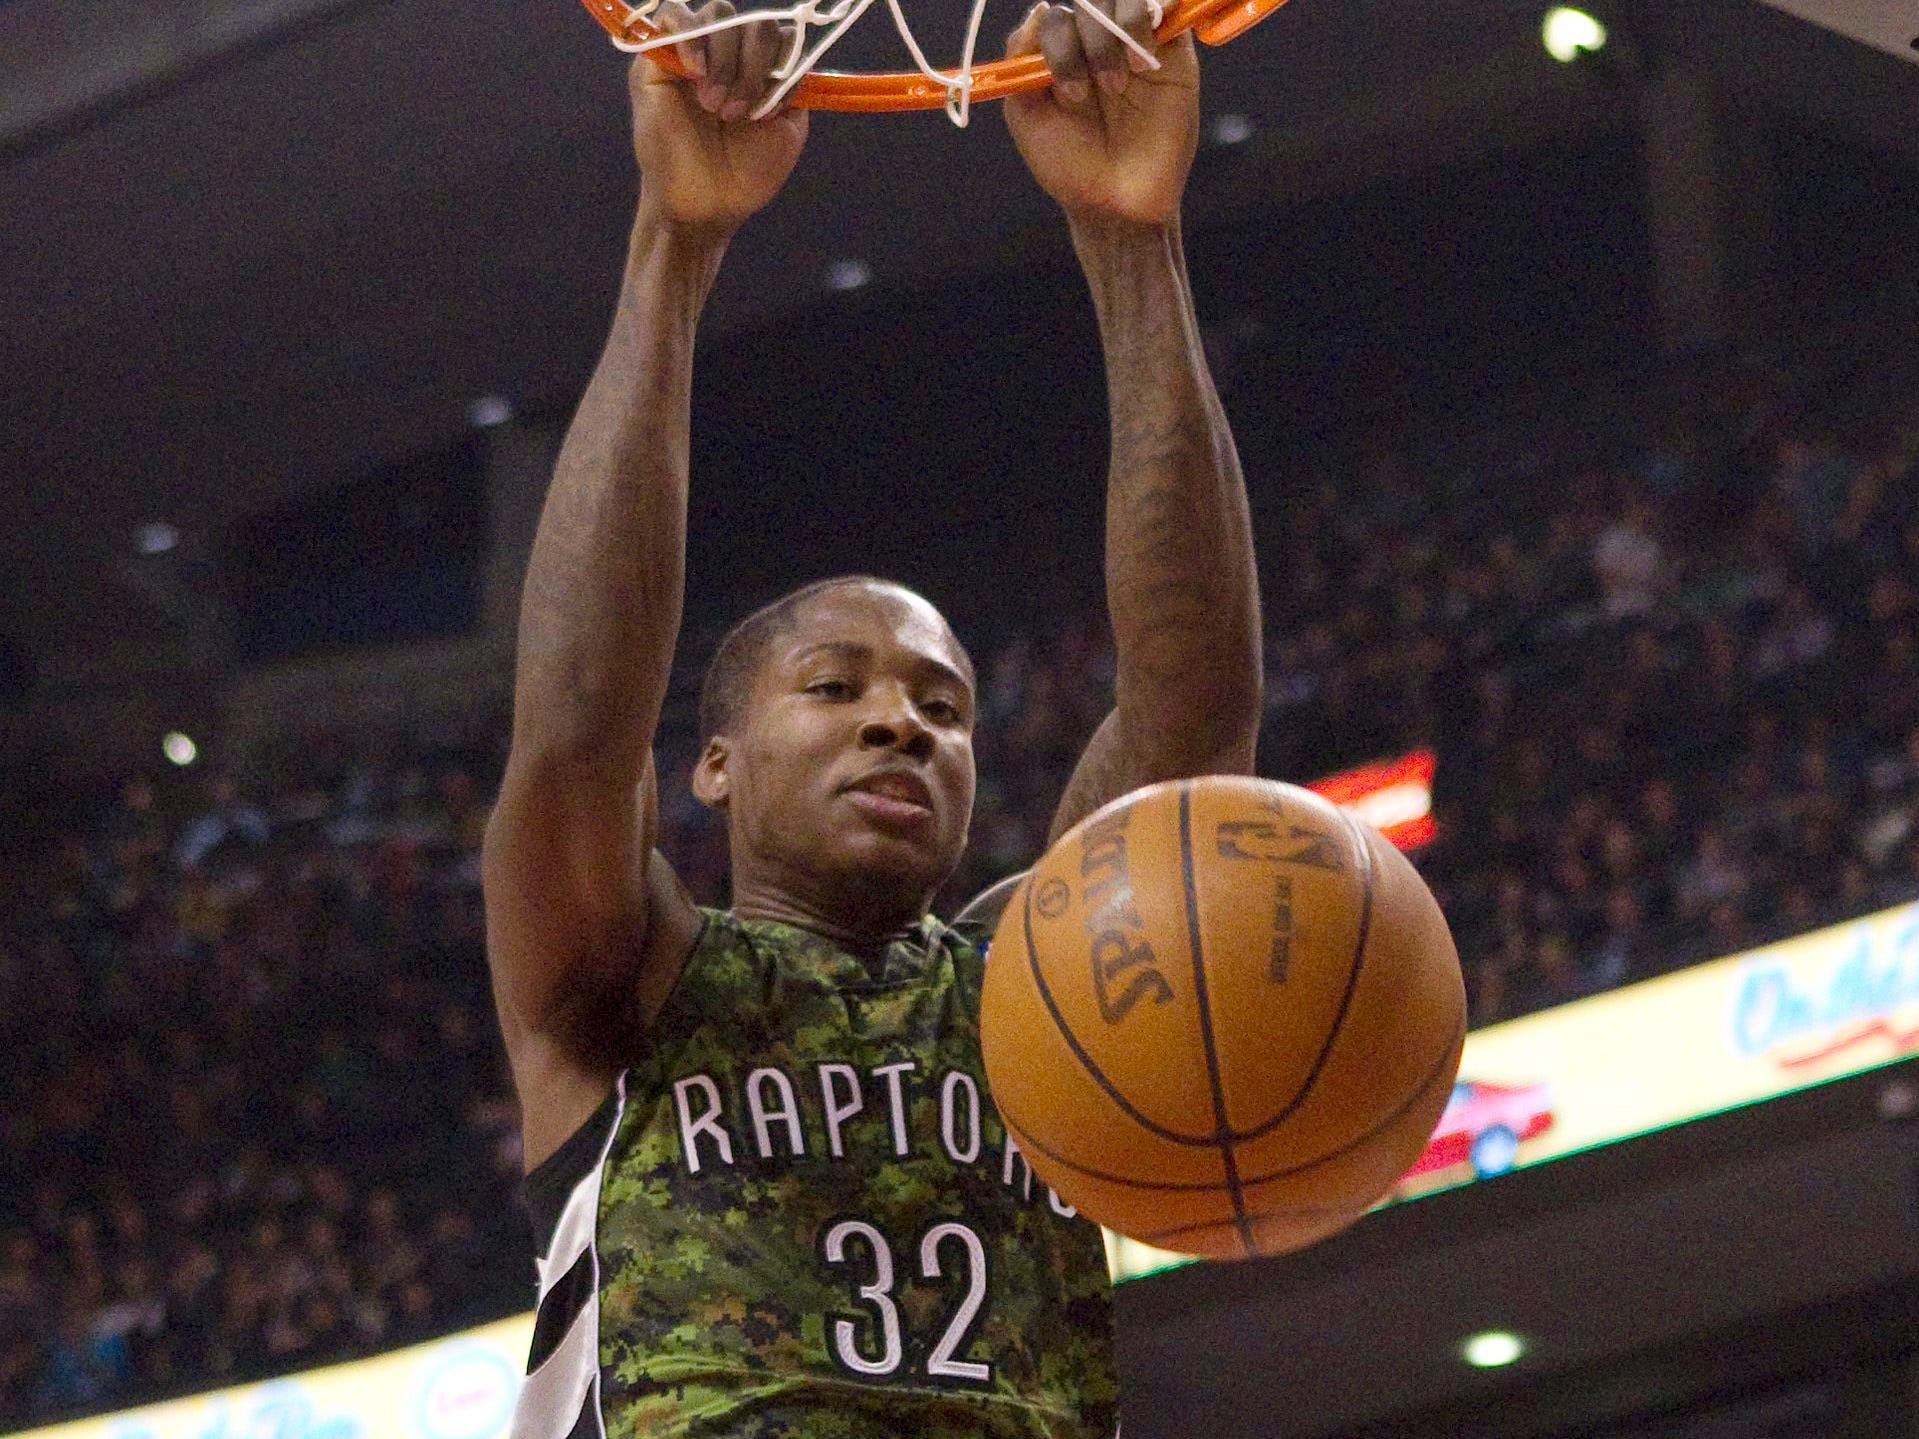 OK, maybe the dino wasn't so bad. Check out Ed Davis' 2012 Toronto Raptors camouflage uniform.